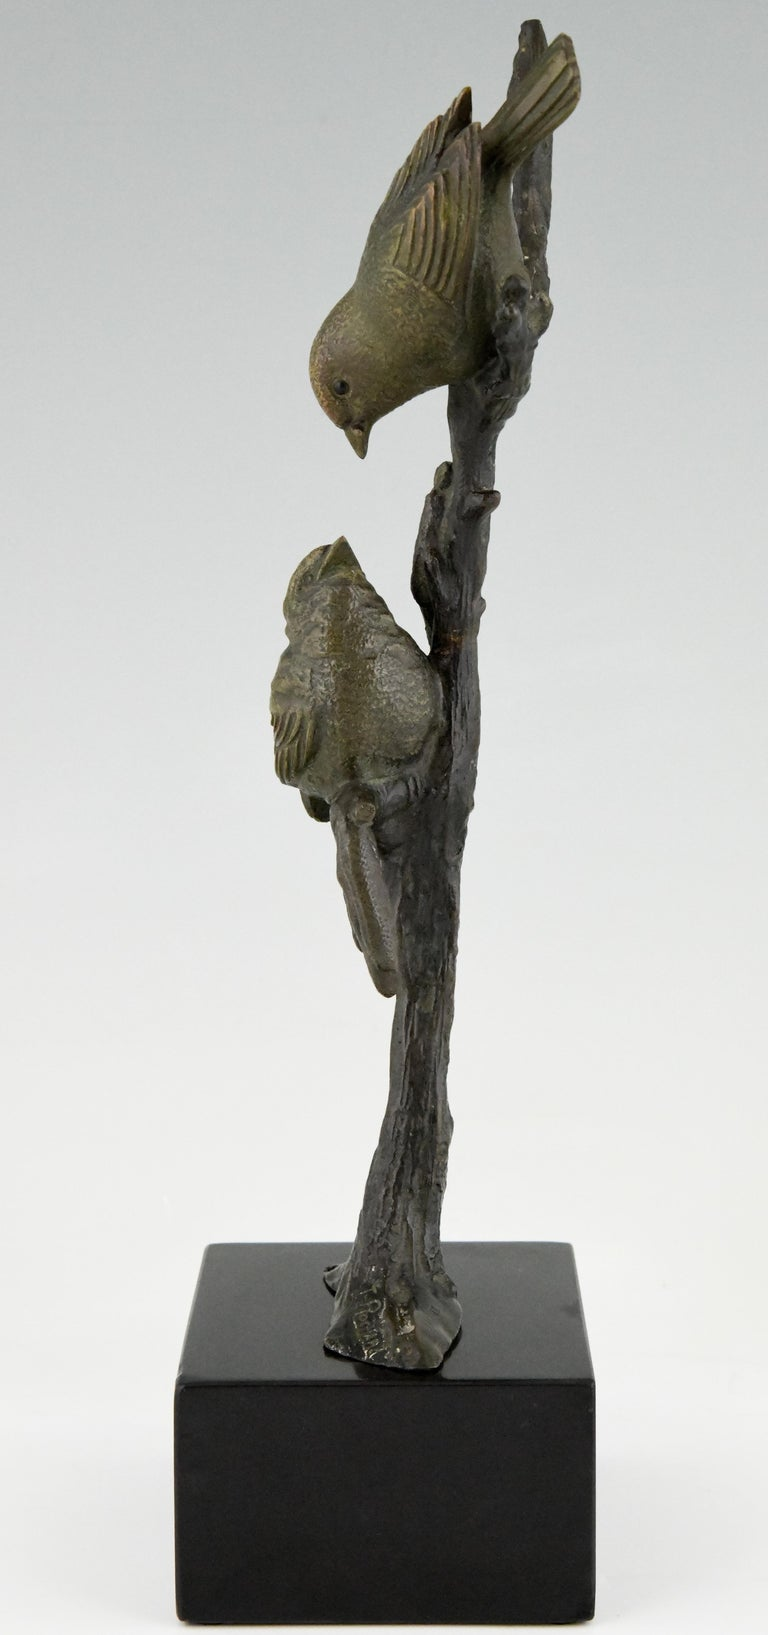 Patinated Art Deco Bronze Sculpture Two Birds on an Branch Irenee Rochard, France, 1930 For Sale